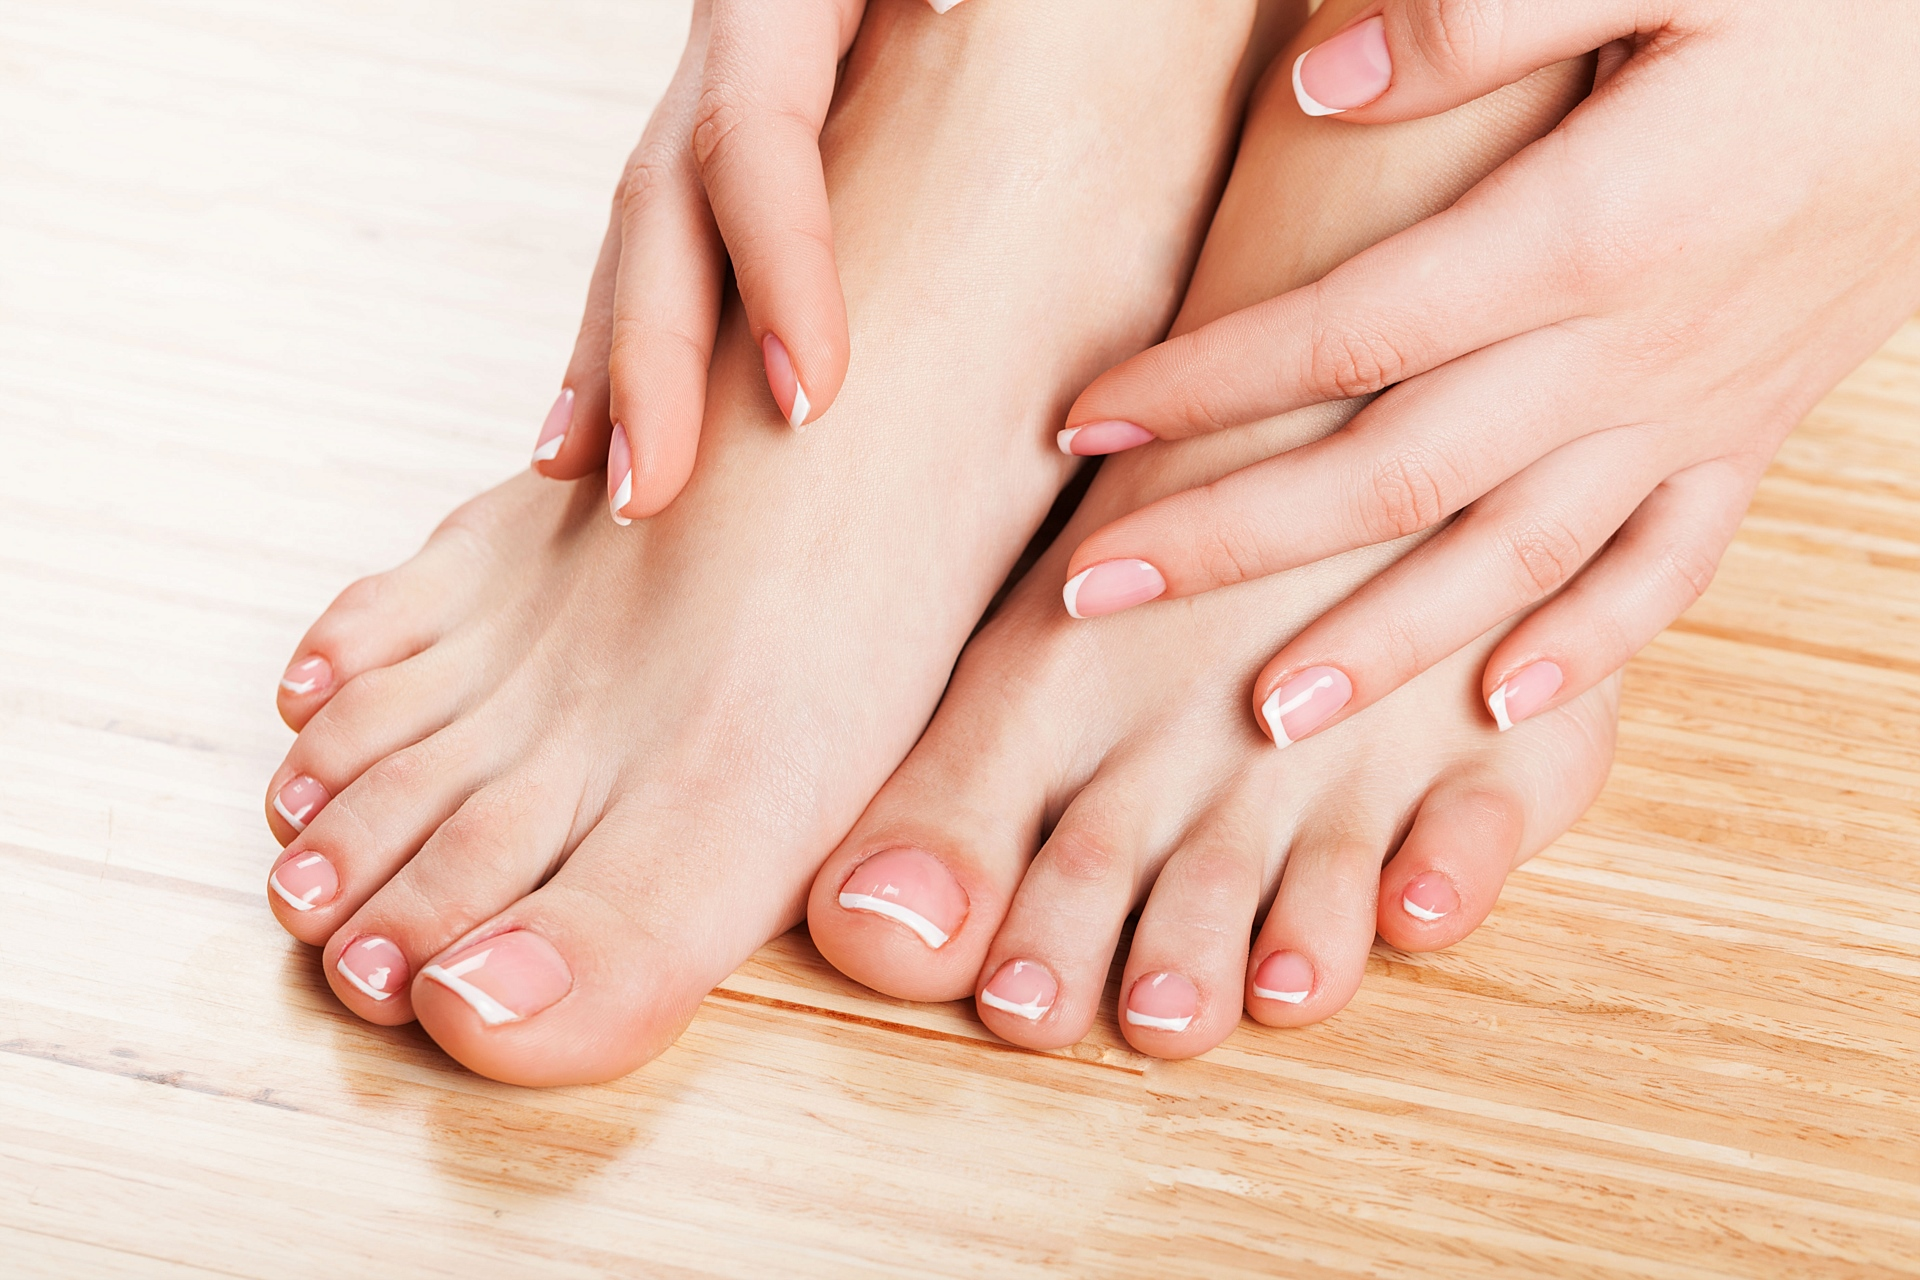 how to care for ballet feet